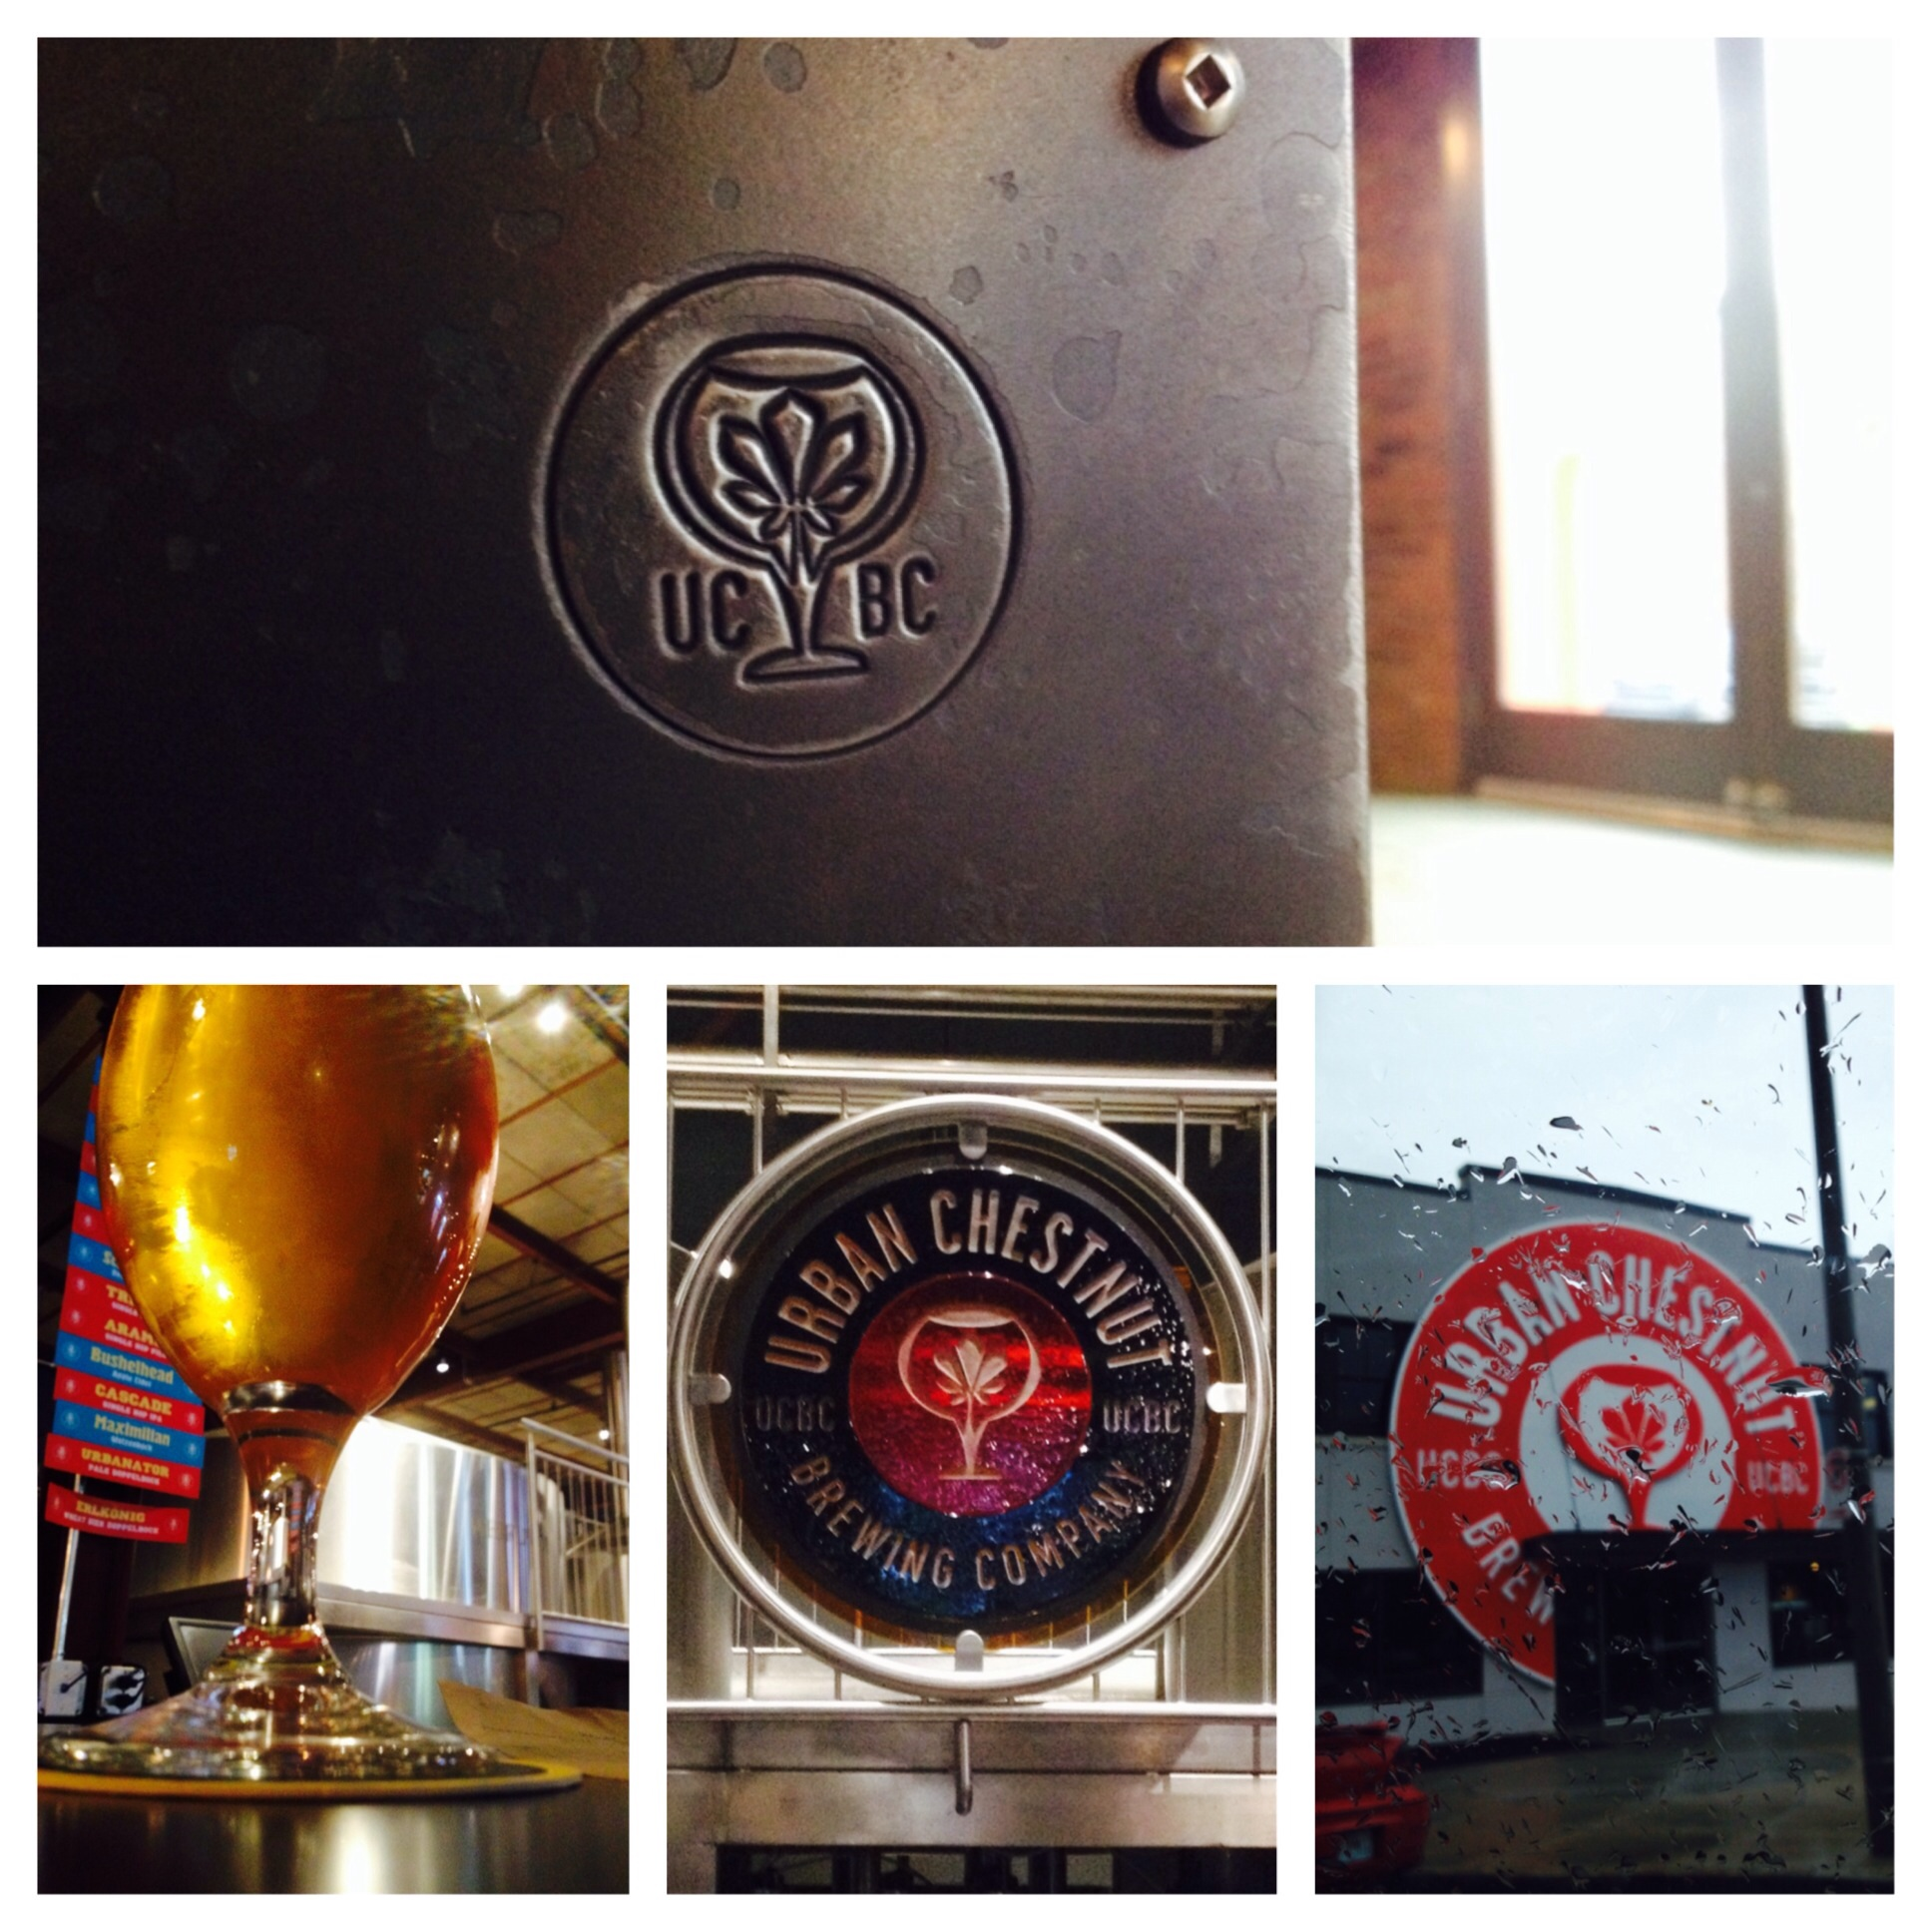 A smattering of images from the new UCBC location in The Grove.